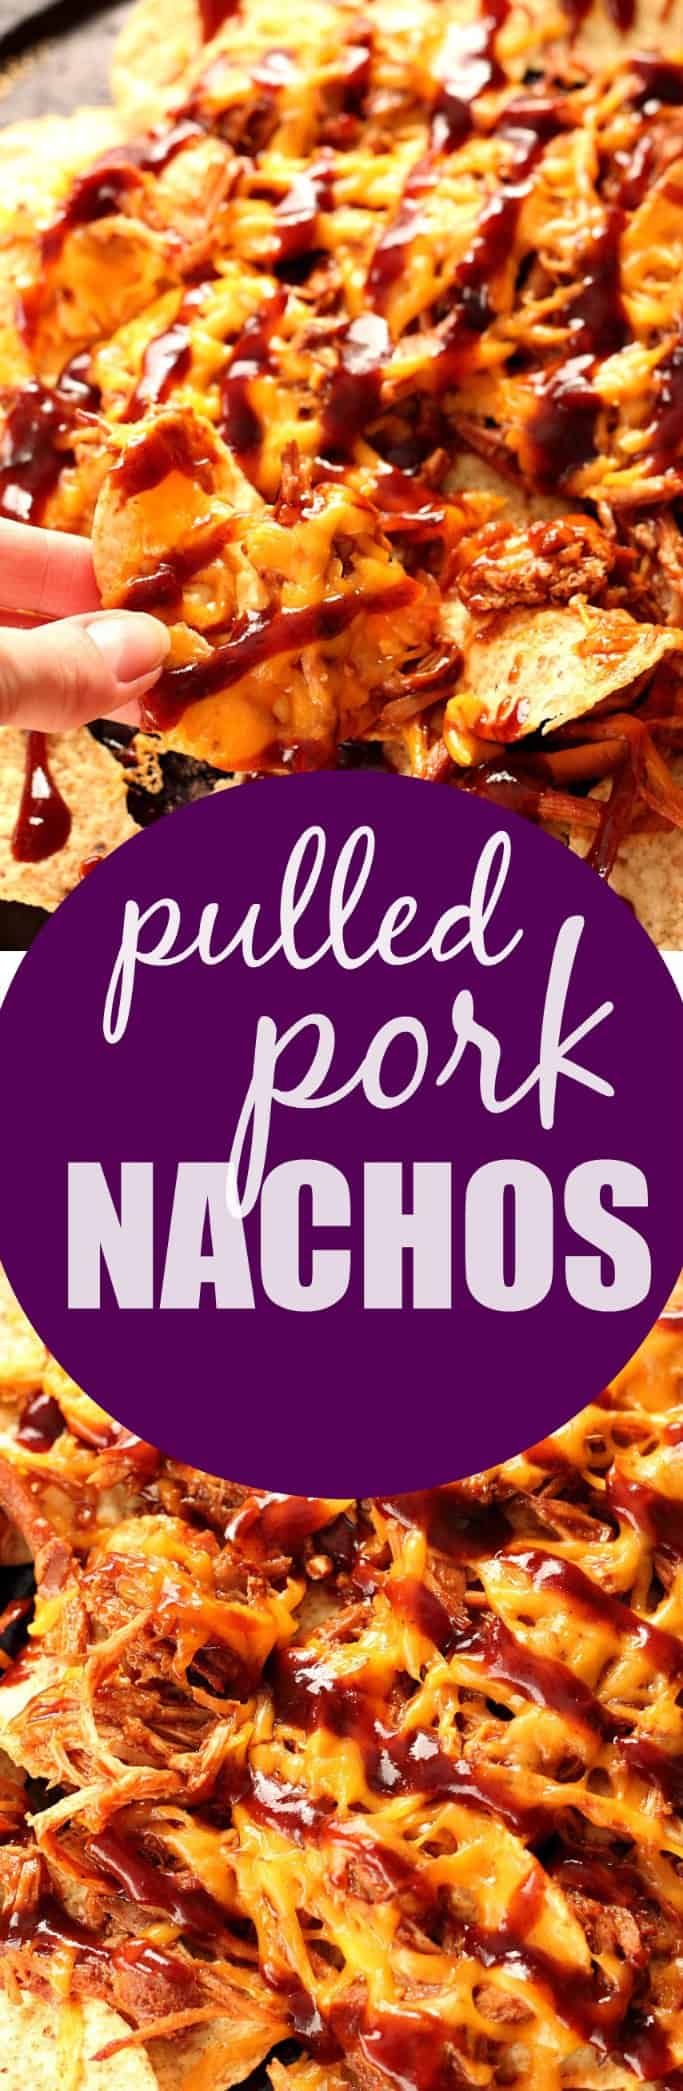 pulled pork nachos long Pulled Pork Nachos